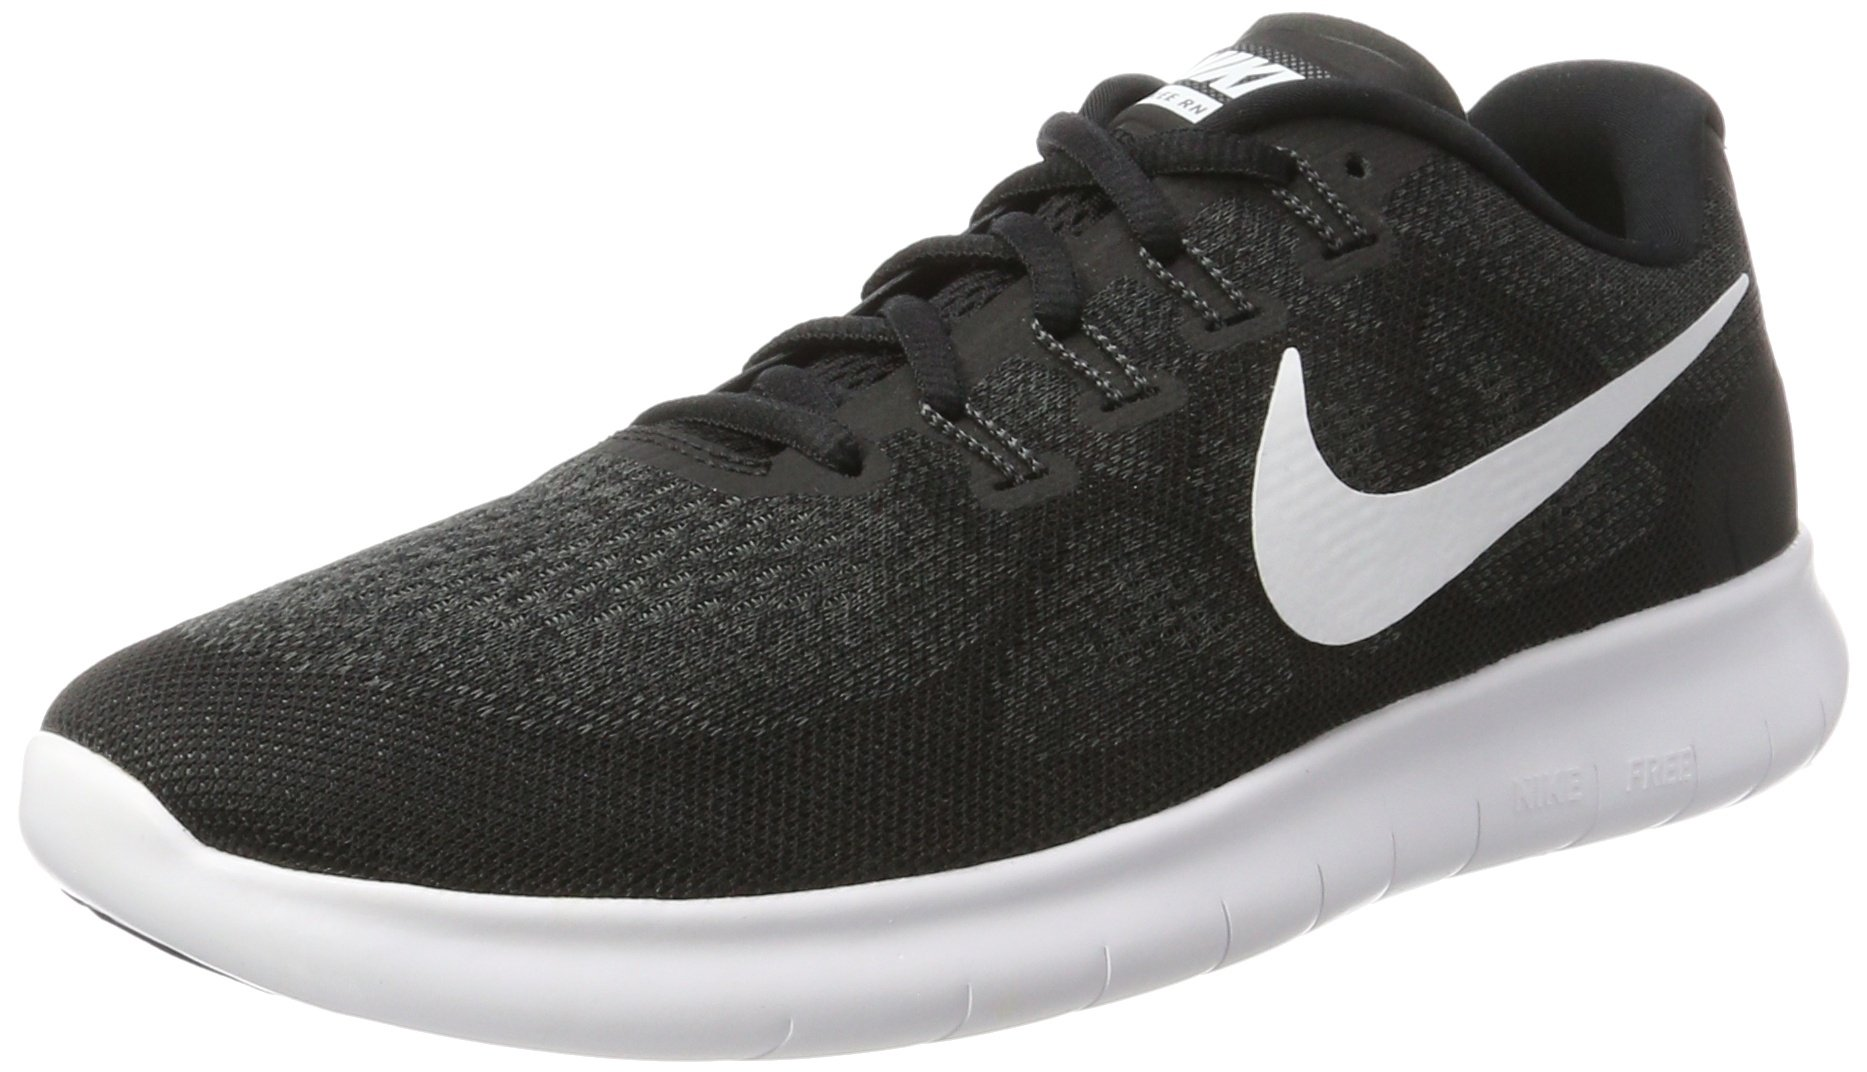 NIKE Women's FreeRN 2017 Running Shoe Black 11.5 by NIKE